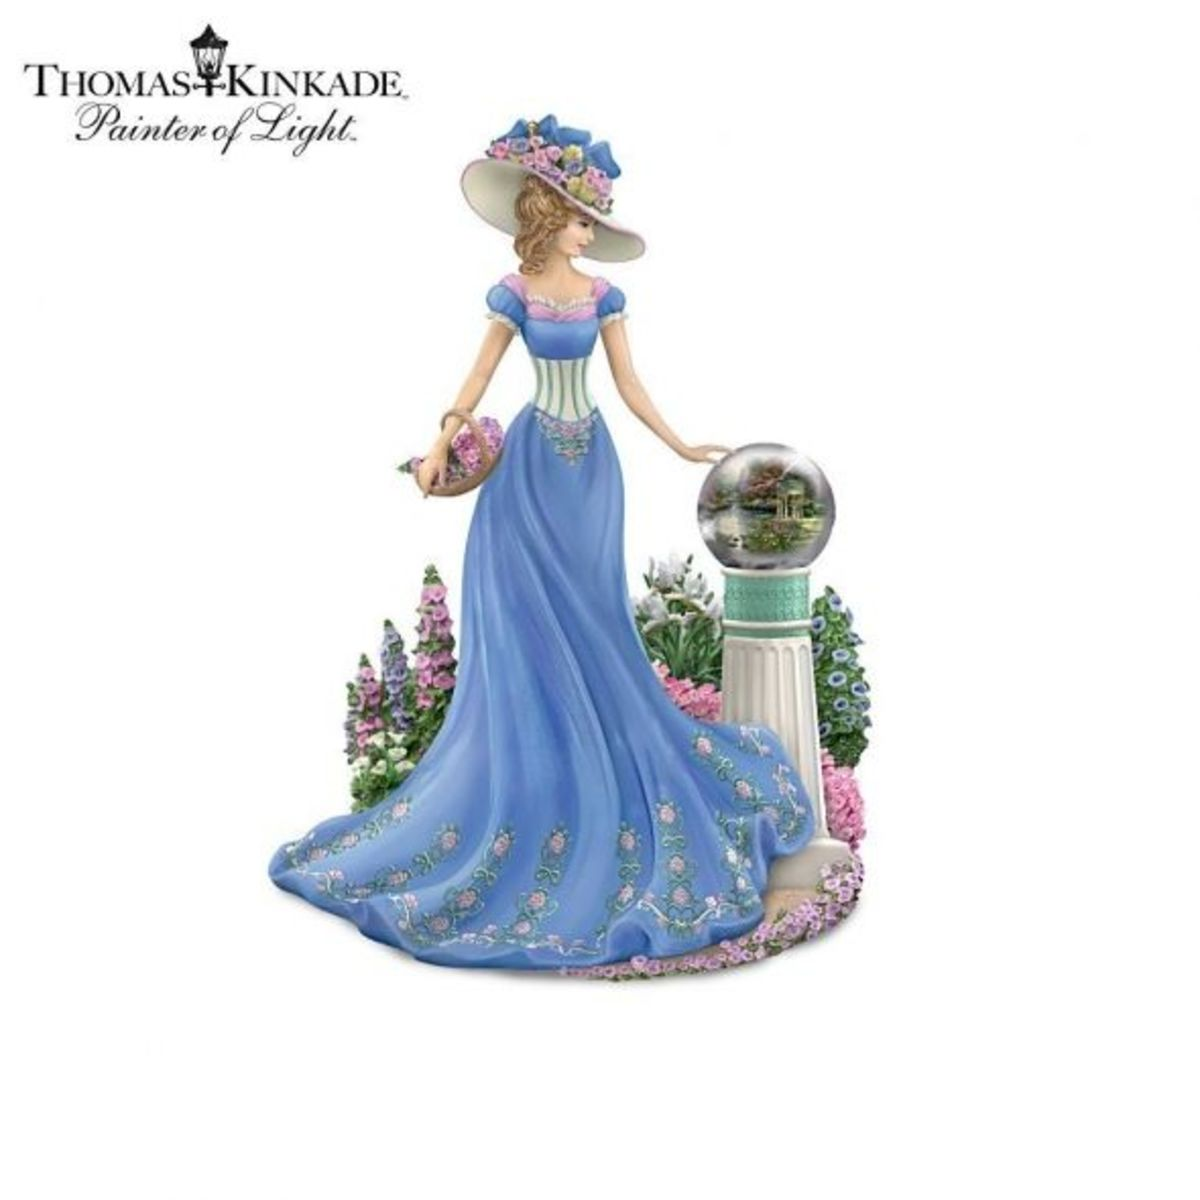 There are hundred's of Thomas Kinkade figurines besides this garden one.